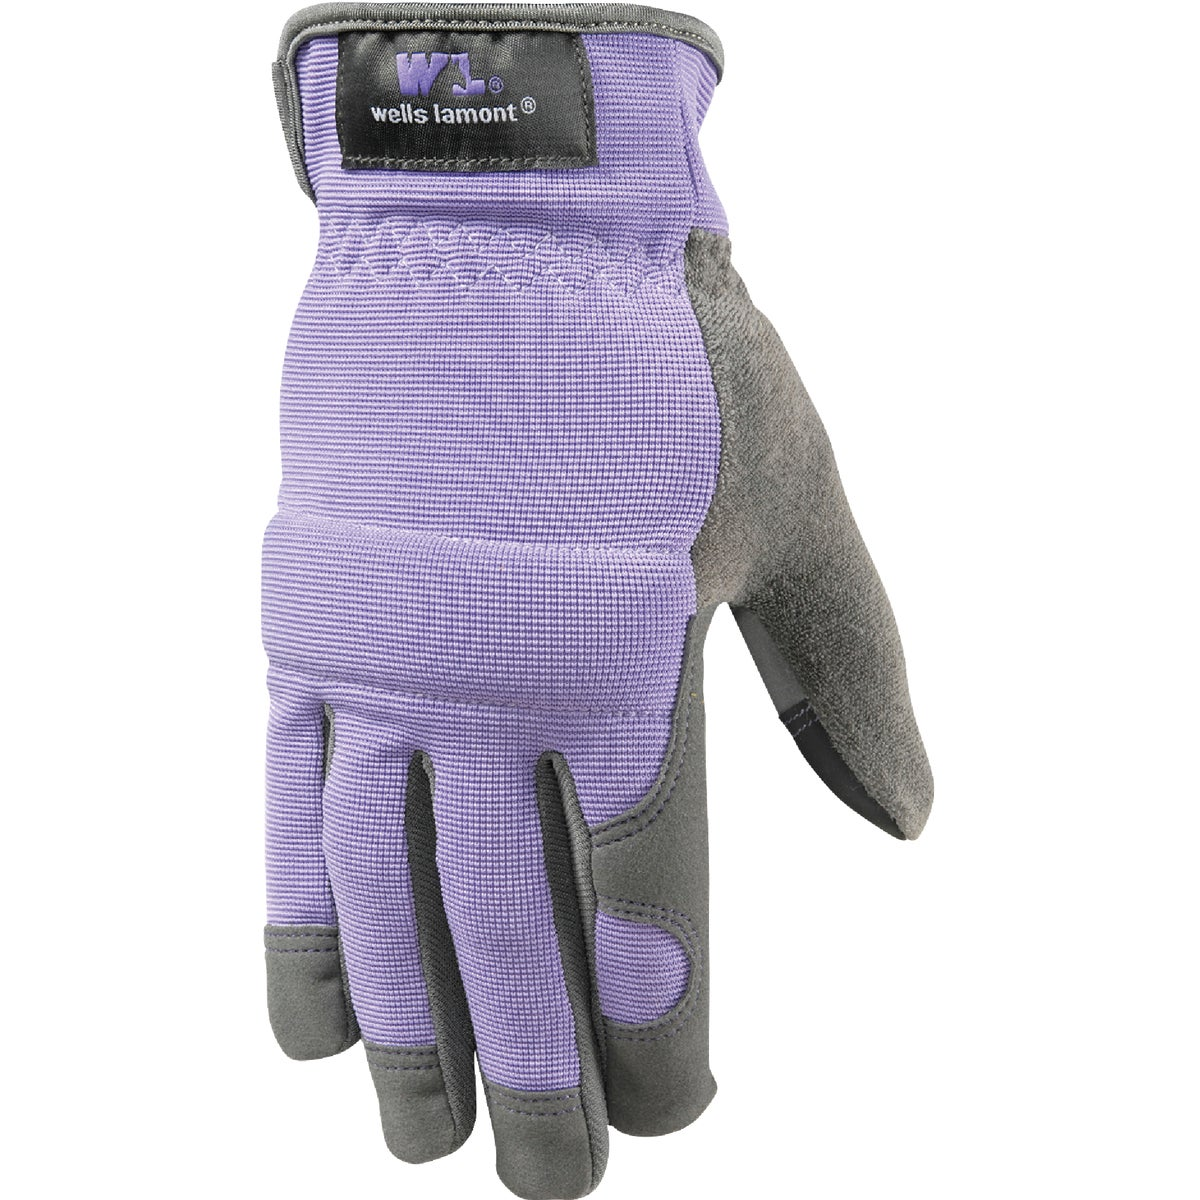 MED SYNTHETIC LTHR GLOVE - 7707M by Wells Lamont